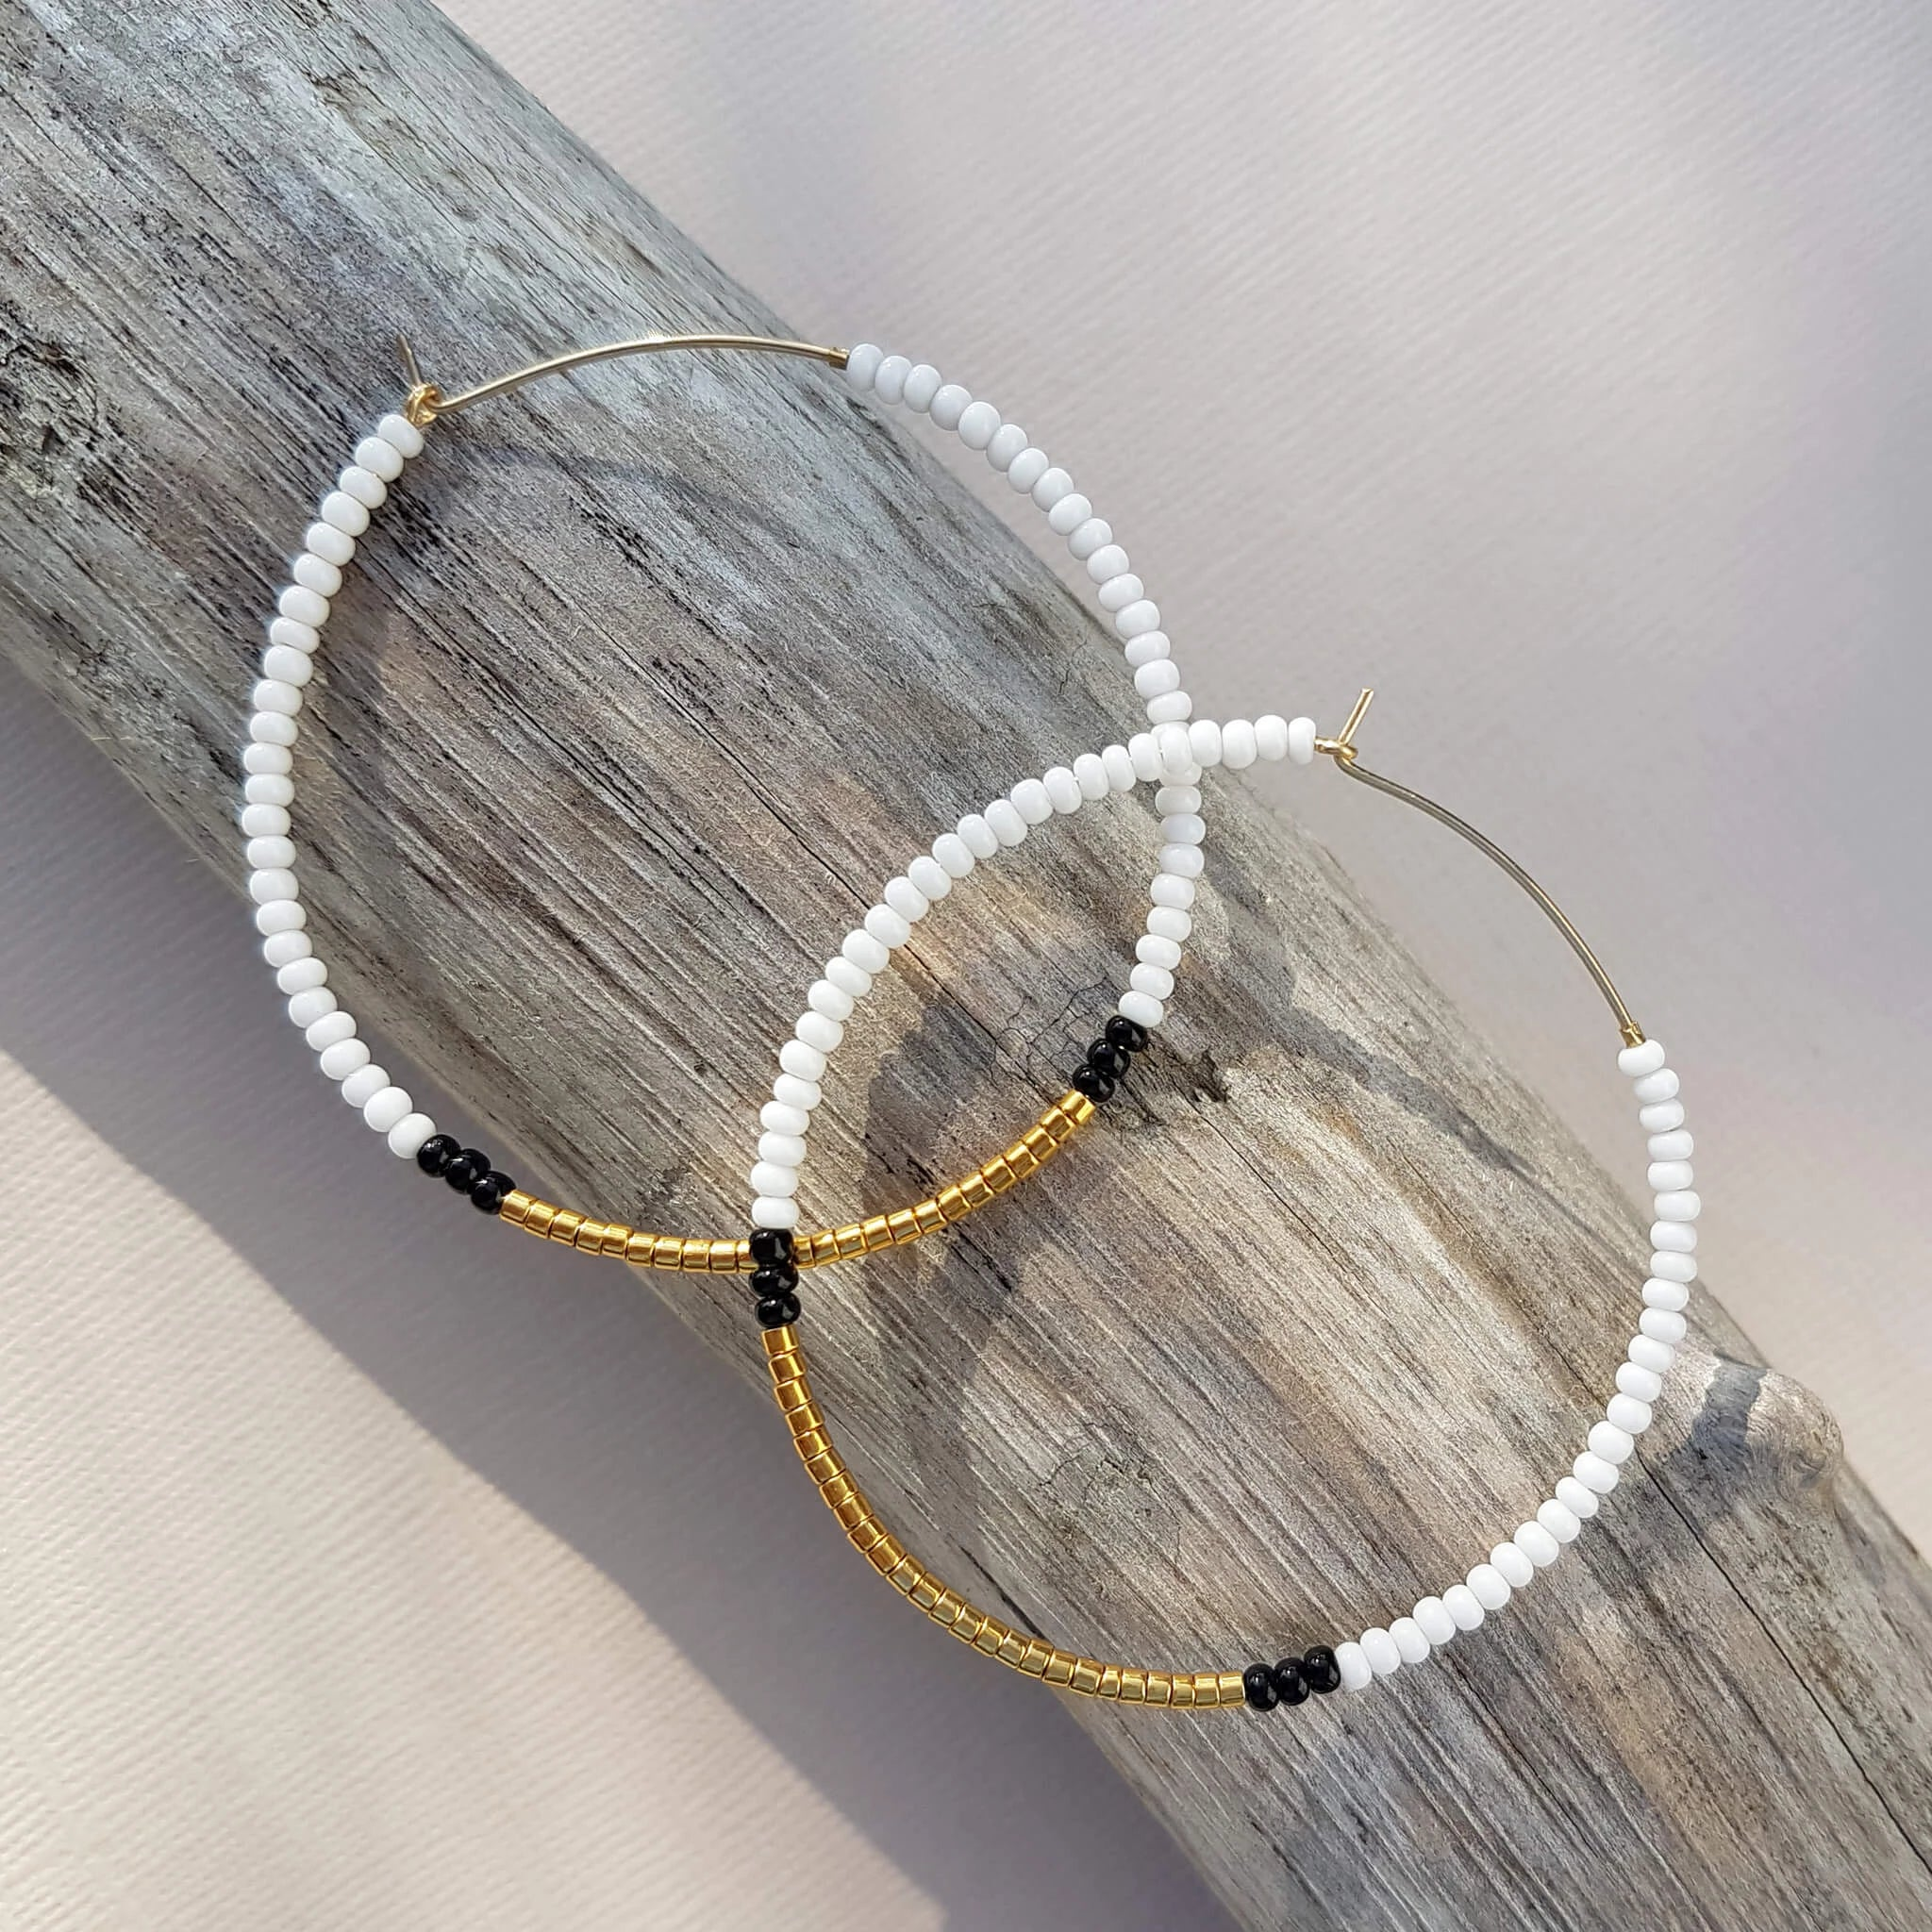 Endito Large Hoop Earrings Handmade White, Gold & Black - Unik by Nature